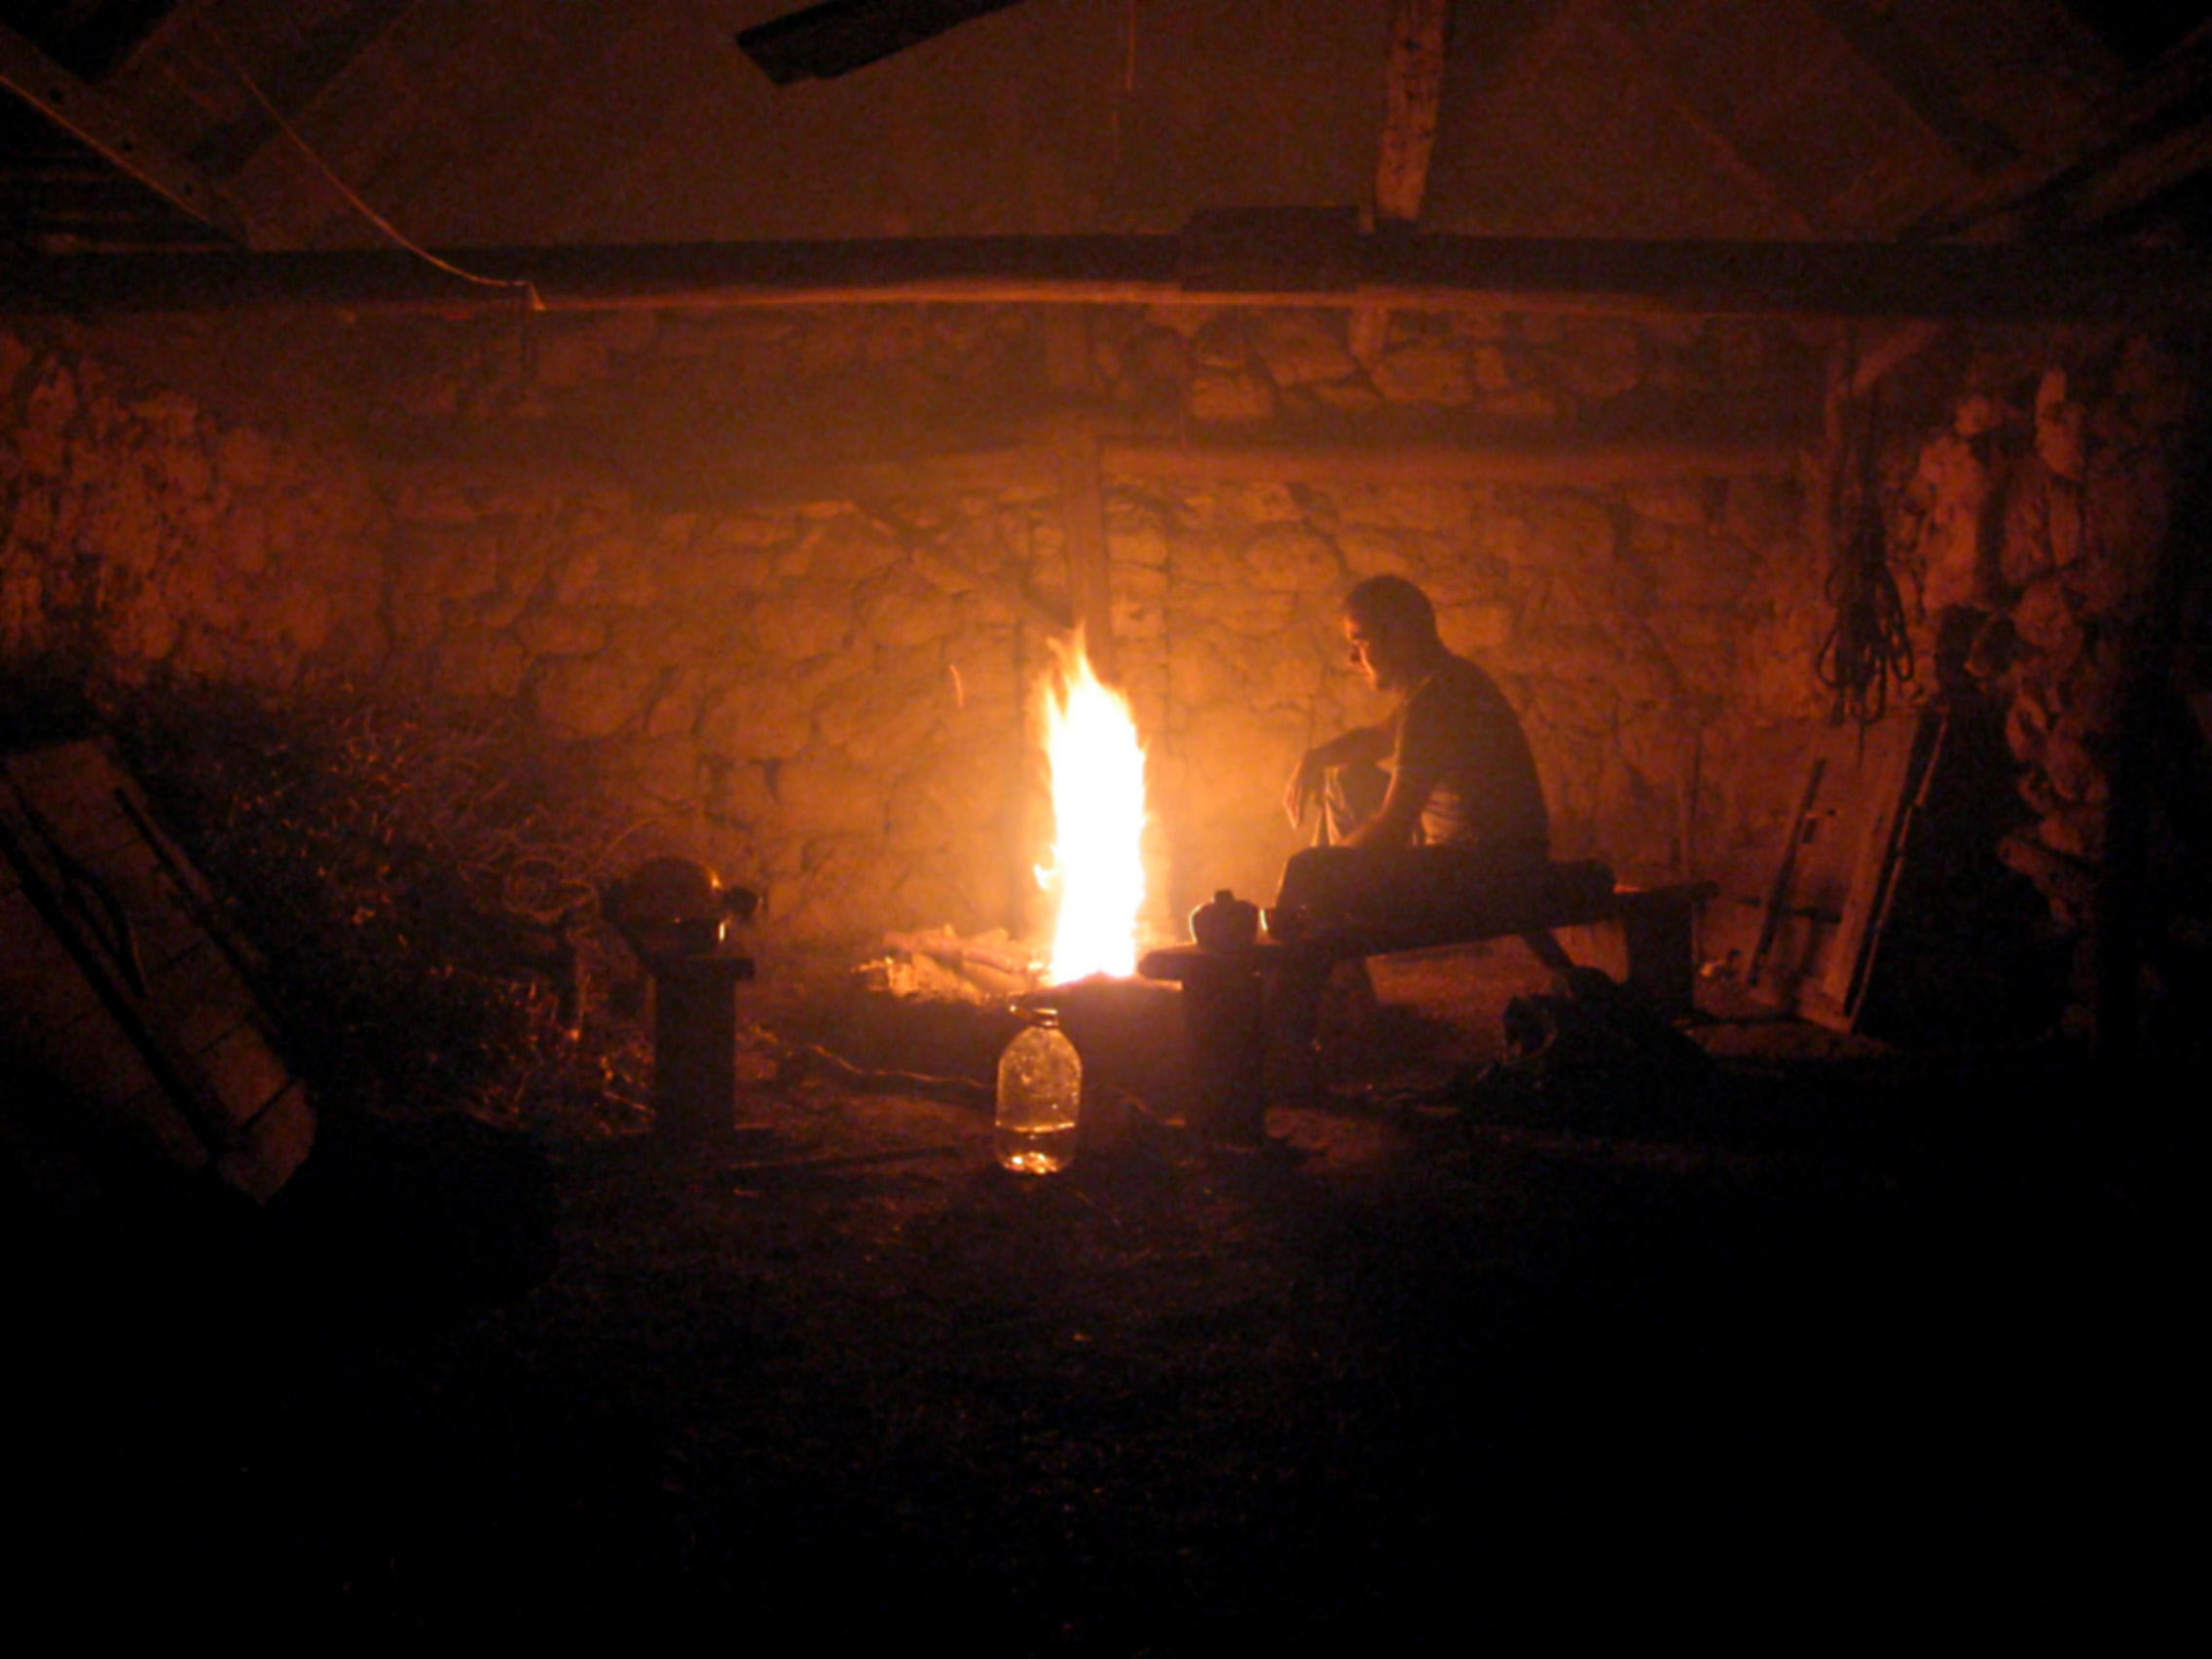 Image: slovenia/2006-Yossarian/006-Kal/Fire in the Cadrg hut